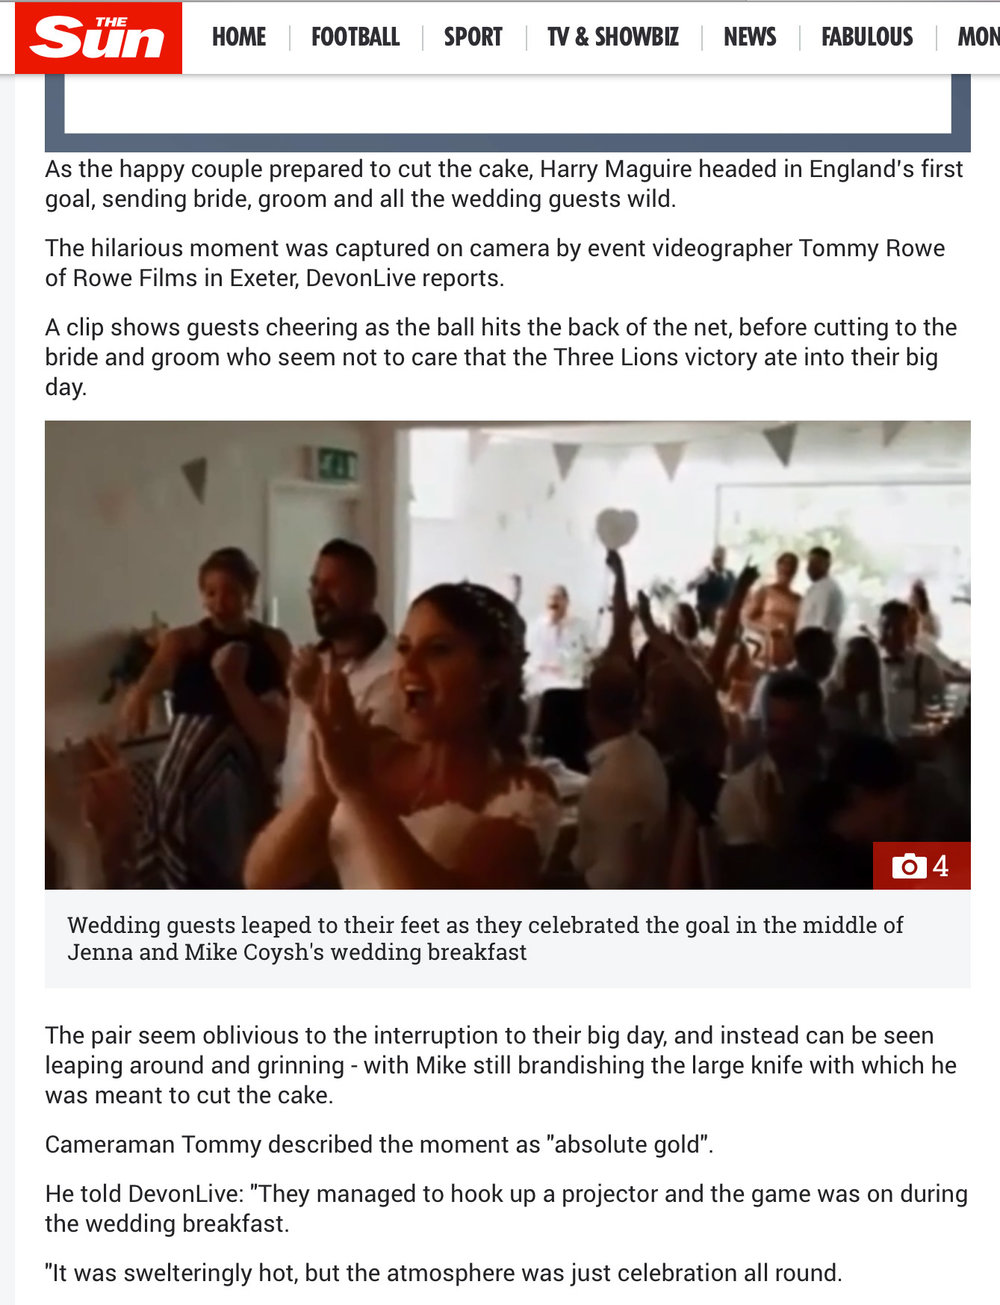 UK wedding videographer national newspaper